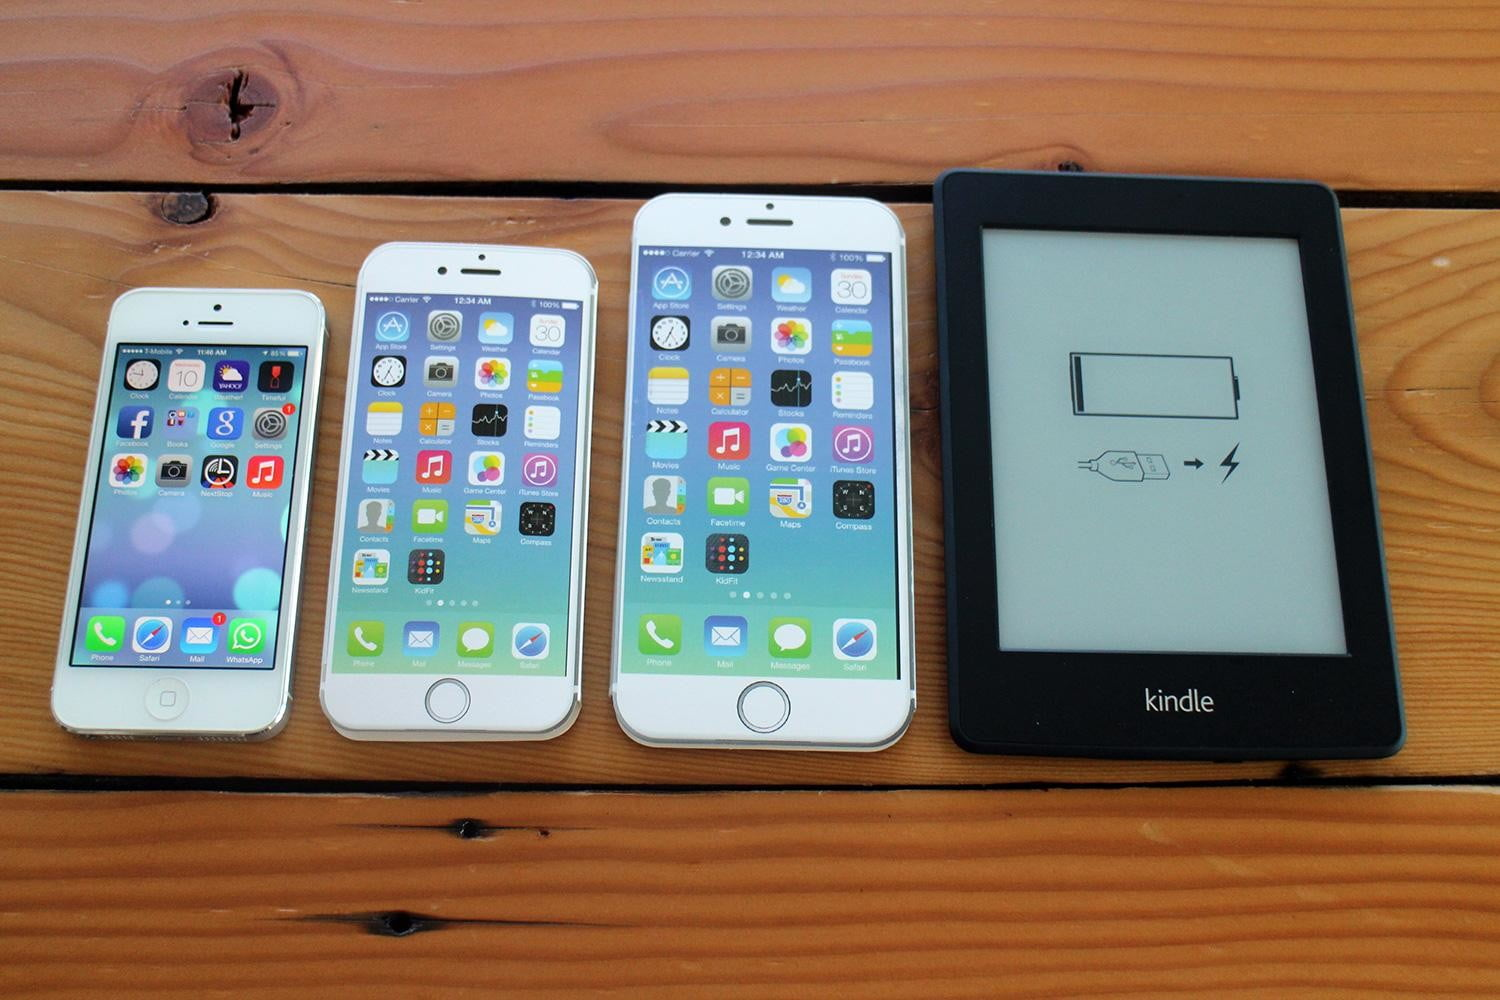 iPhone 5, iPhone 6, iPhone 6 Plus, and Kindle